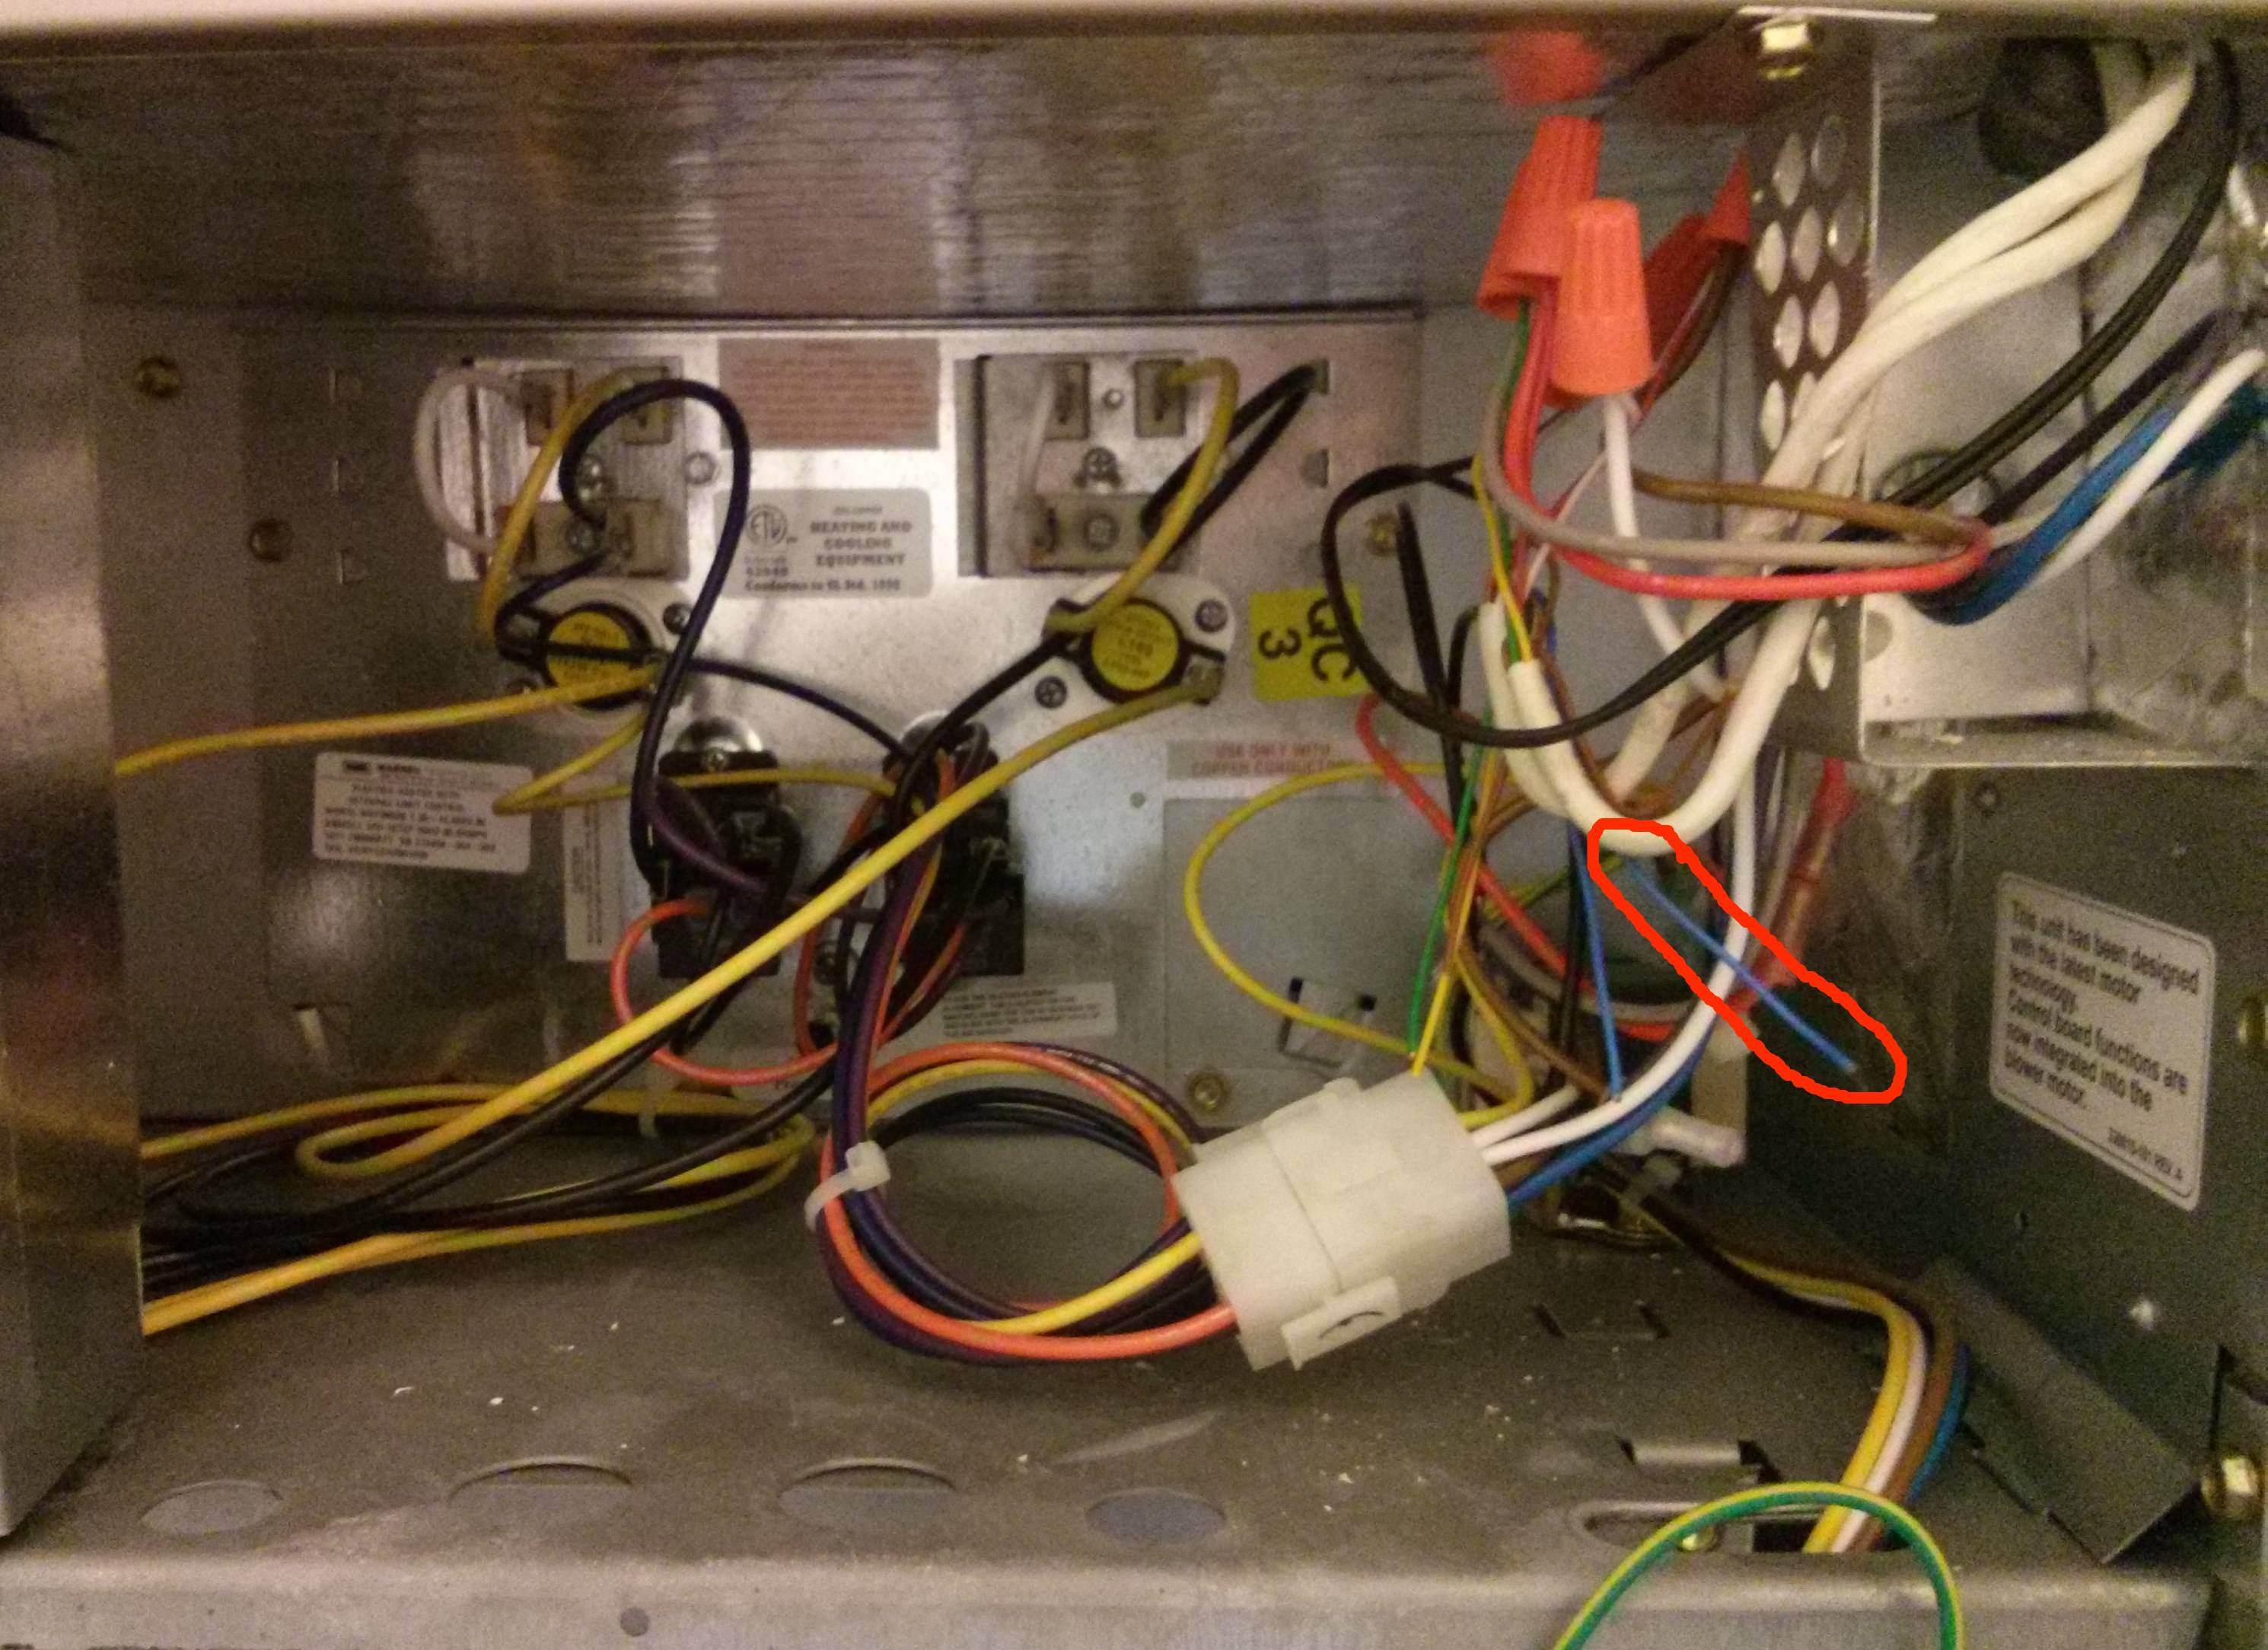 Air Handler Fan Relay Wiring Diagram | Wiring Library - Air Handler Fan Relay Wiring Diagram